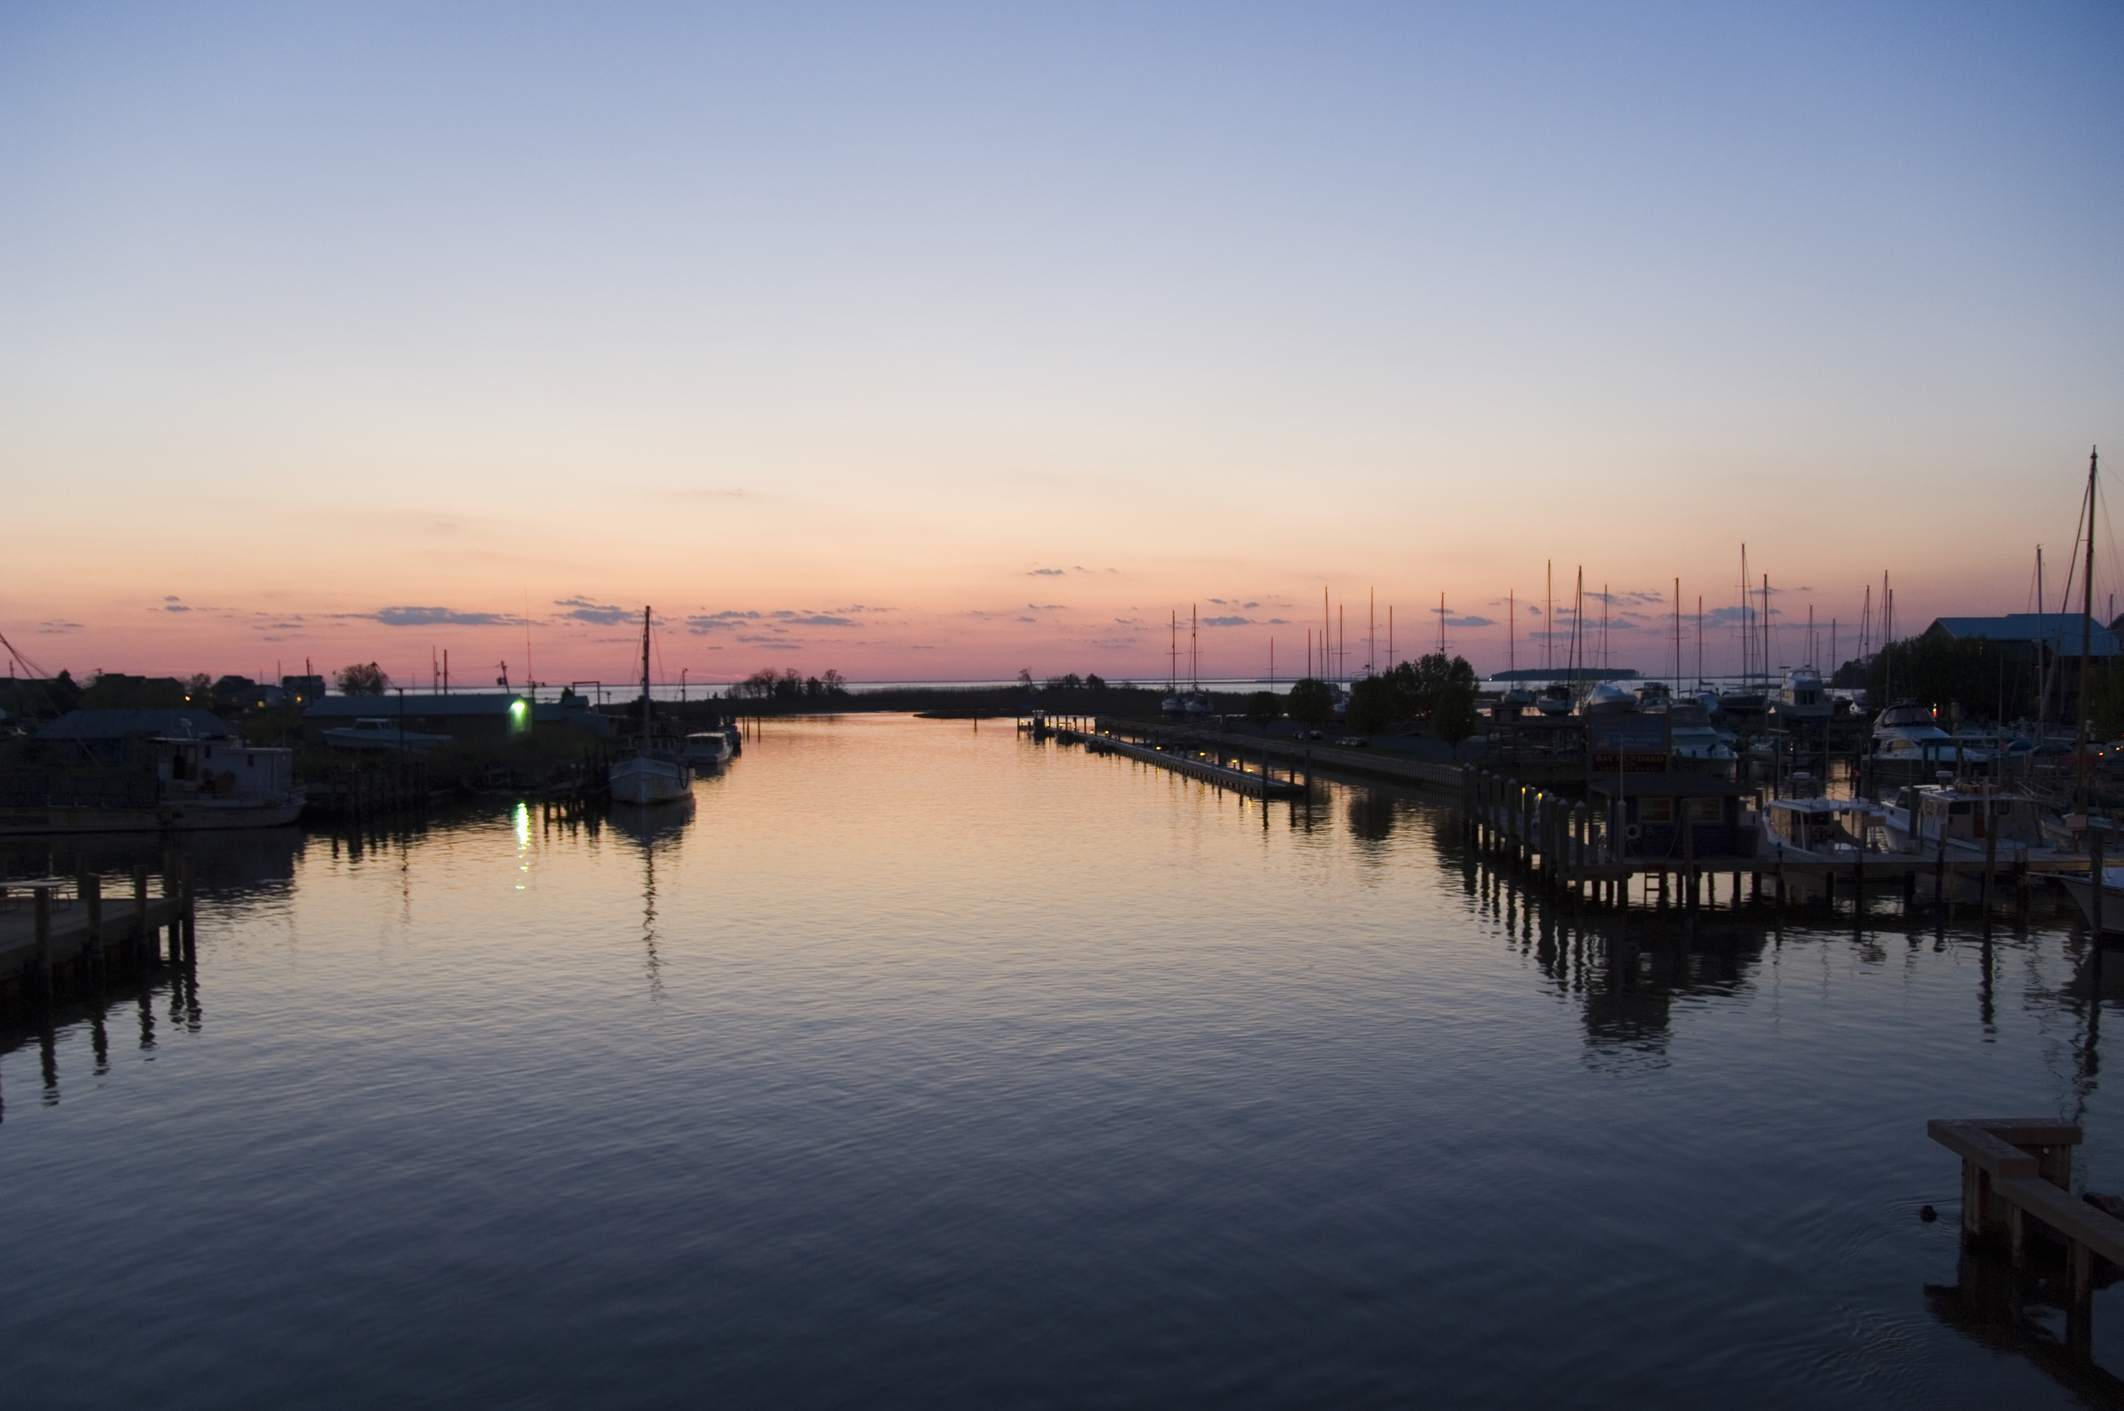 Knapps Narrows, Tilghman Island, Talbot County, Chesapeake Bay area, Maryland, United States of America, North America